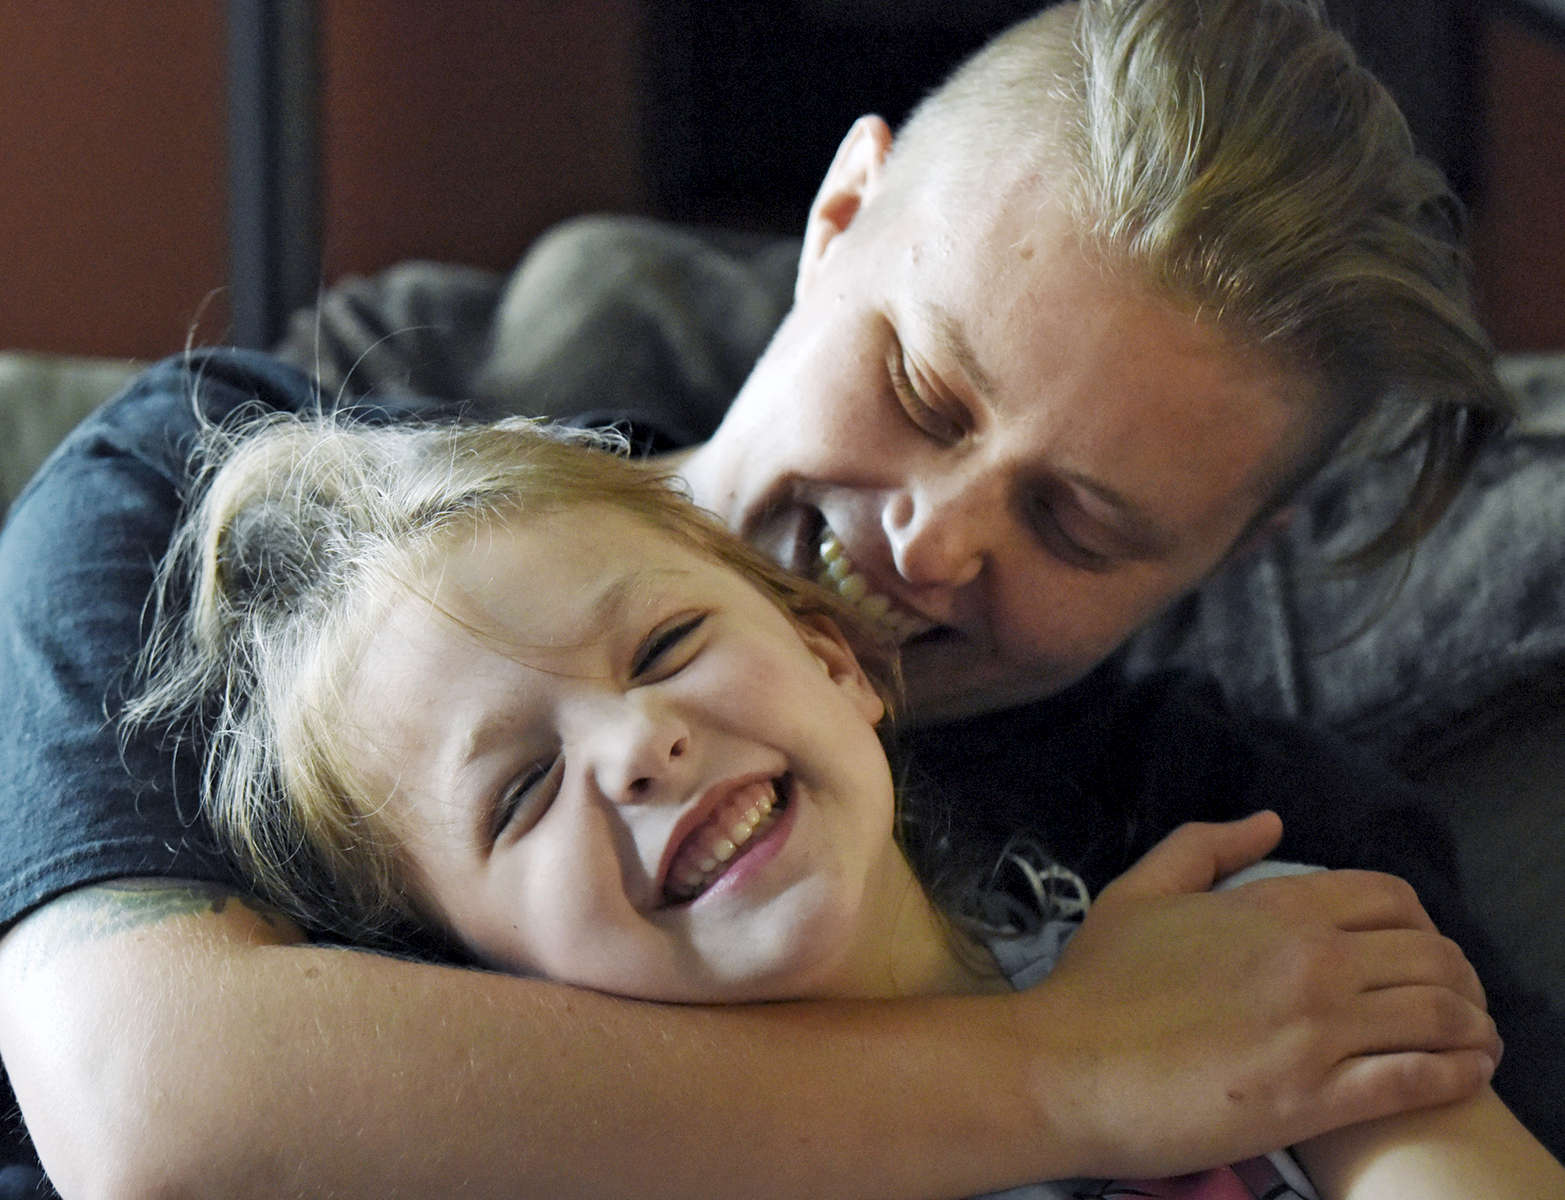 EJ Silverberg spends time with his daughter Brooke Depari, 5, in his North Grafton home on Thursday, June 16, 2016. Silverberg is transgender and plans to have chest reconstruction surgery.